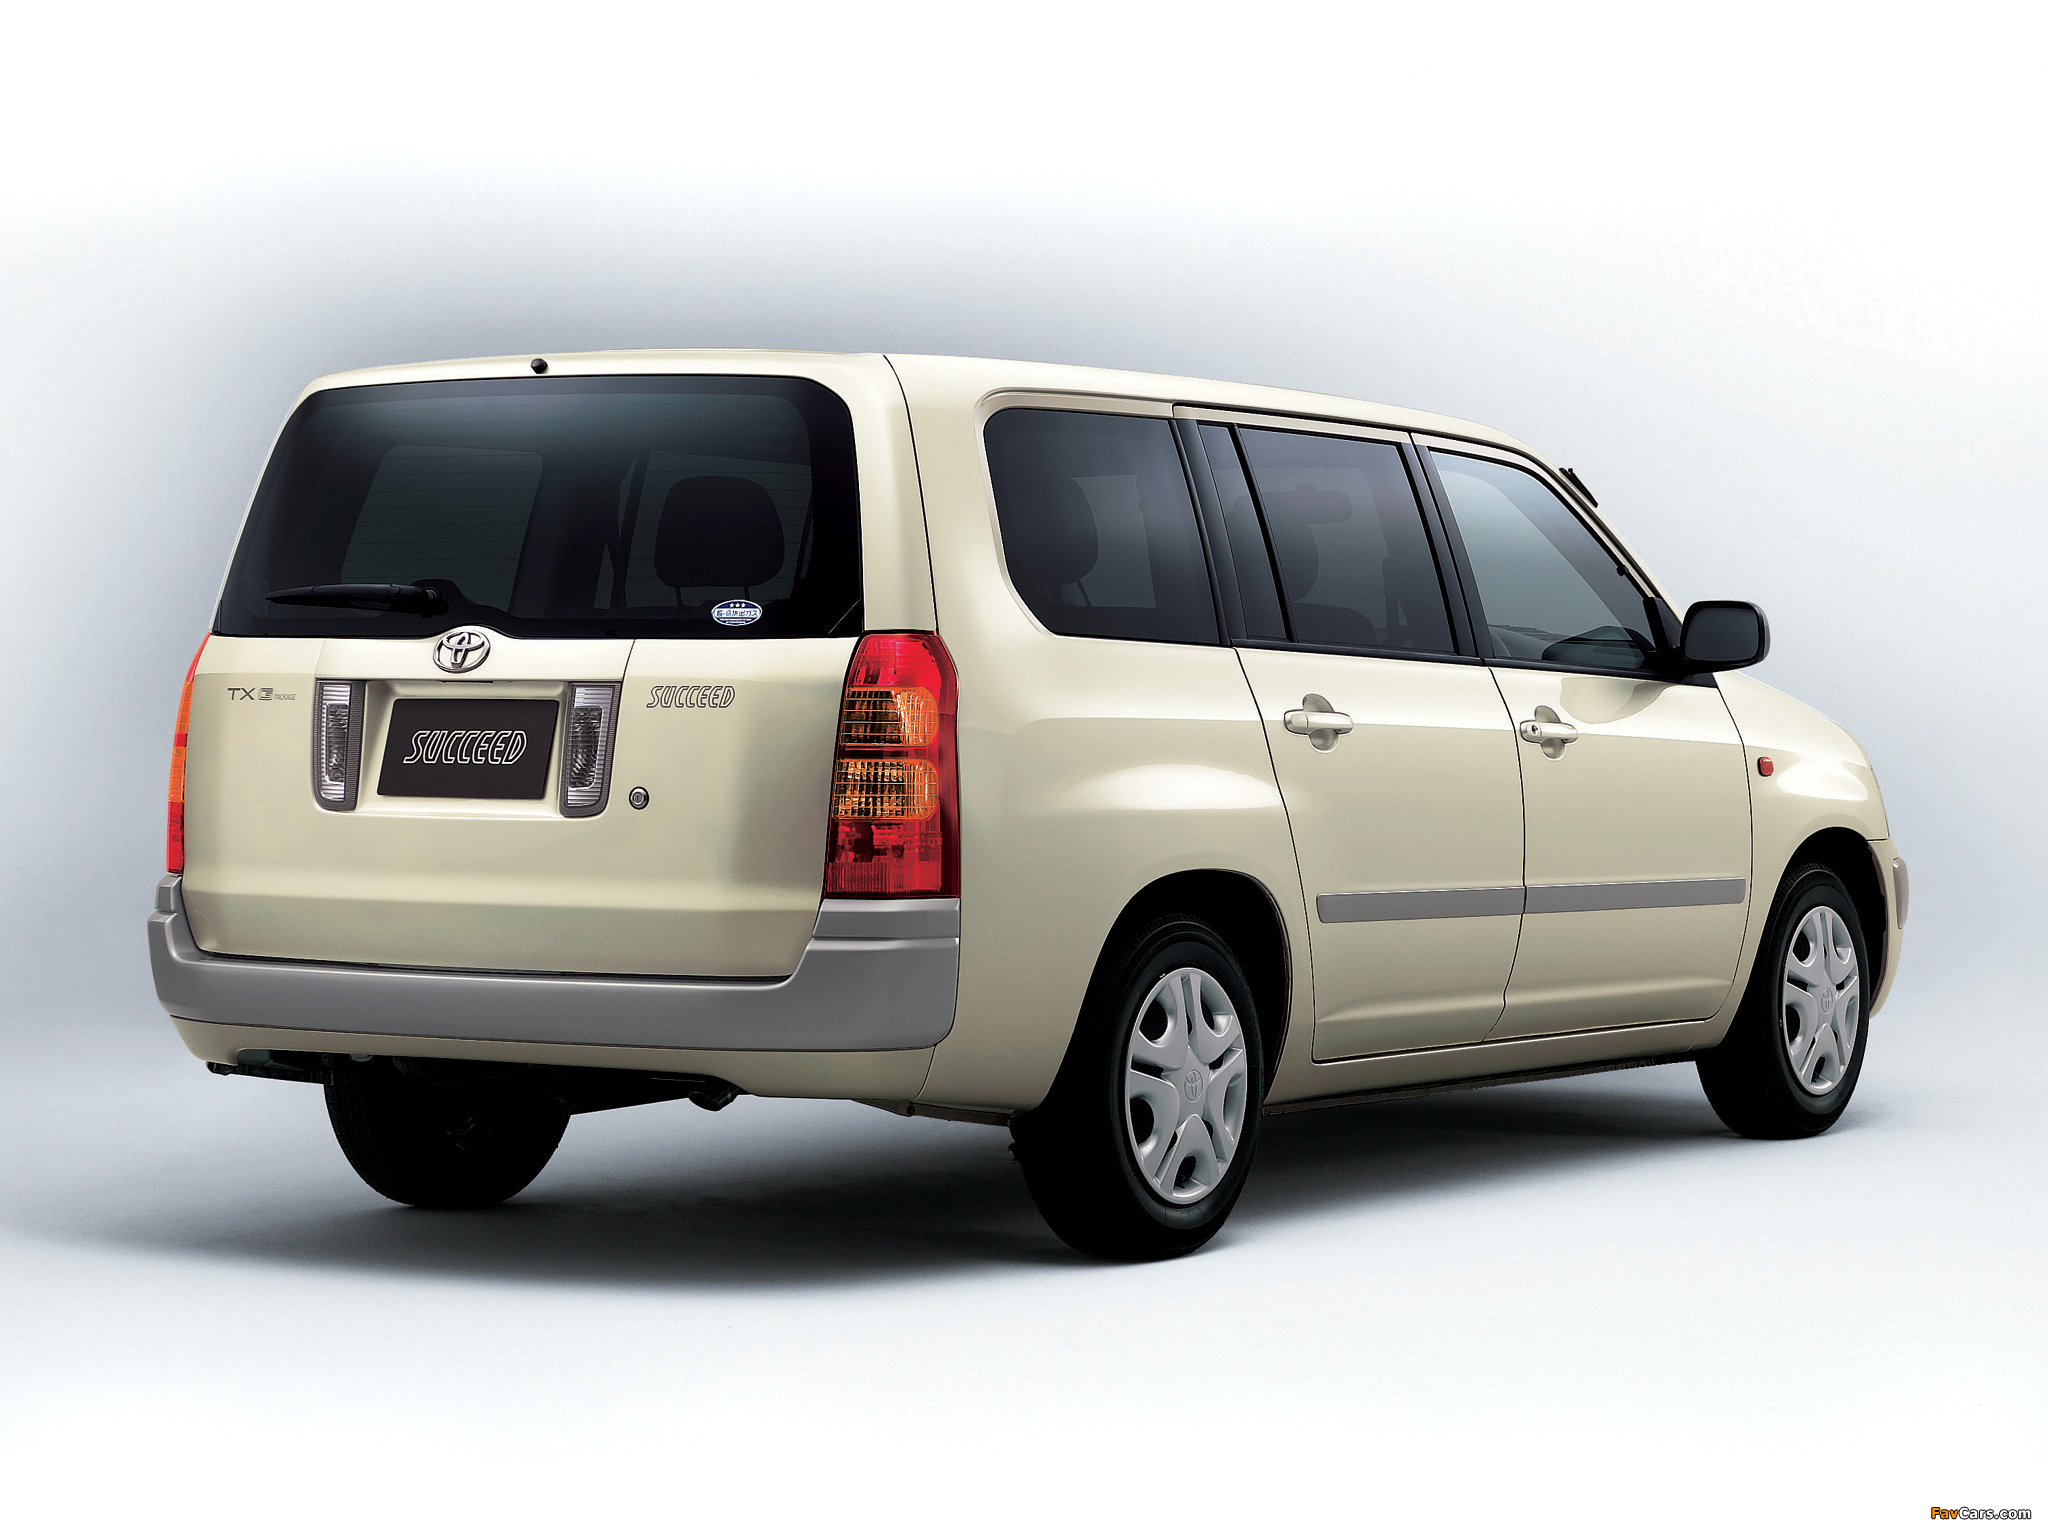 Toyota Succeed Wagon (CP50) 2002 images (2048 x 1536)